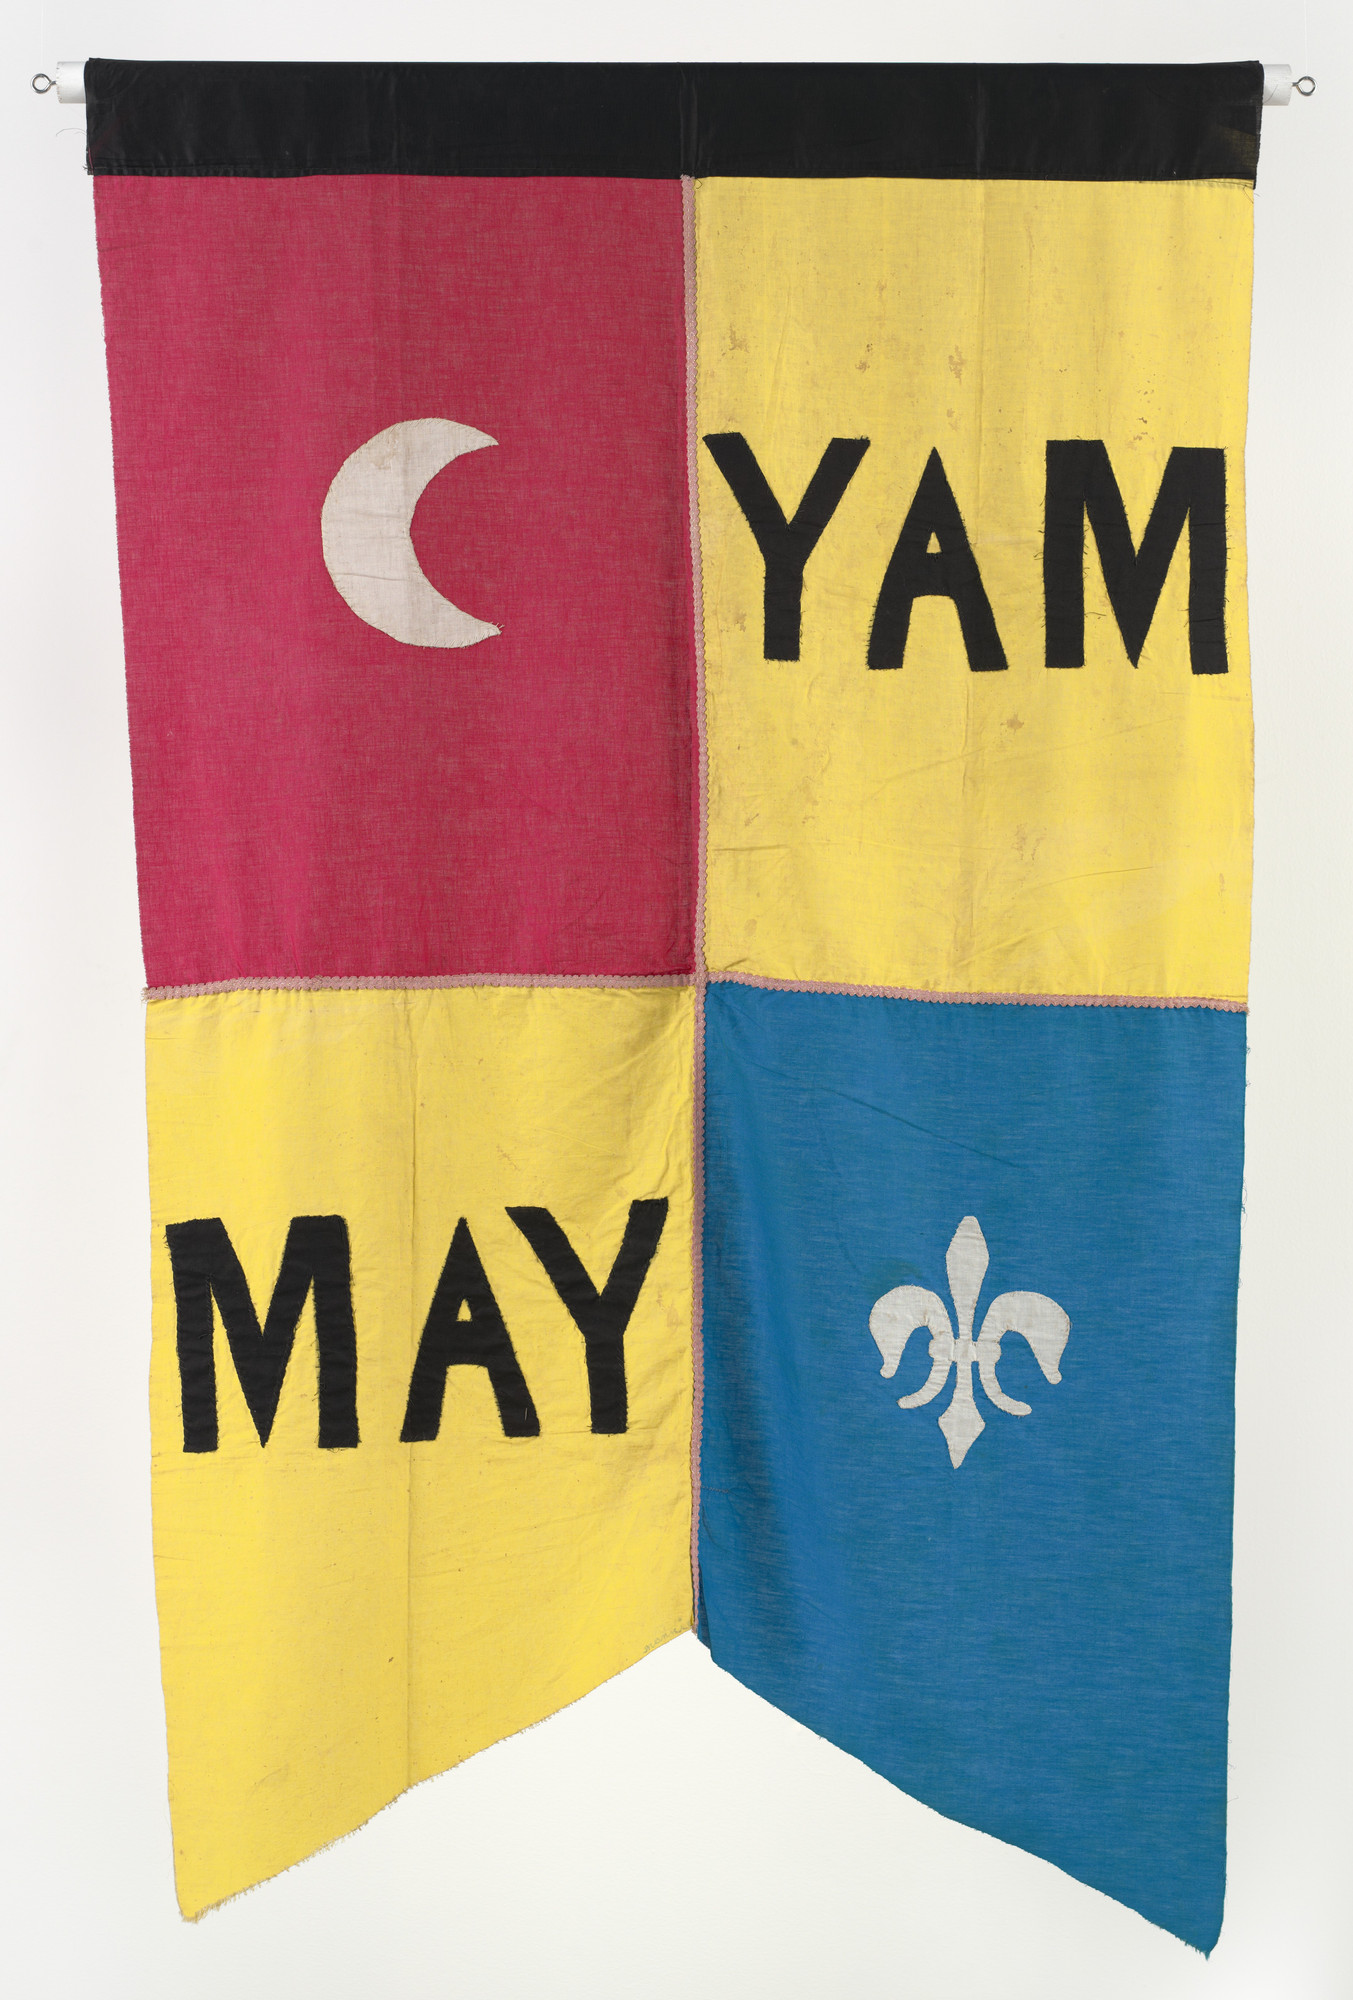 Robert Watts. Banner for Yam Festival/Yam Day. 1963